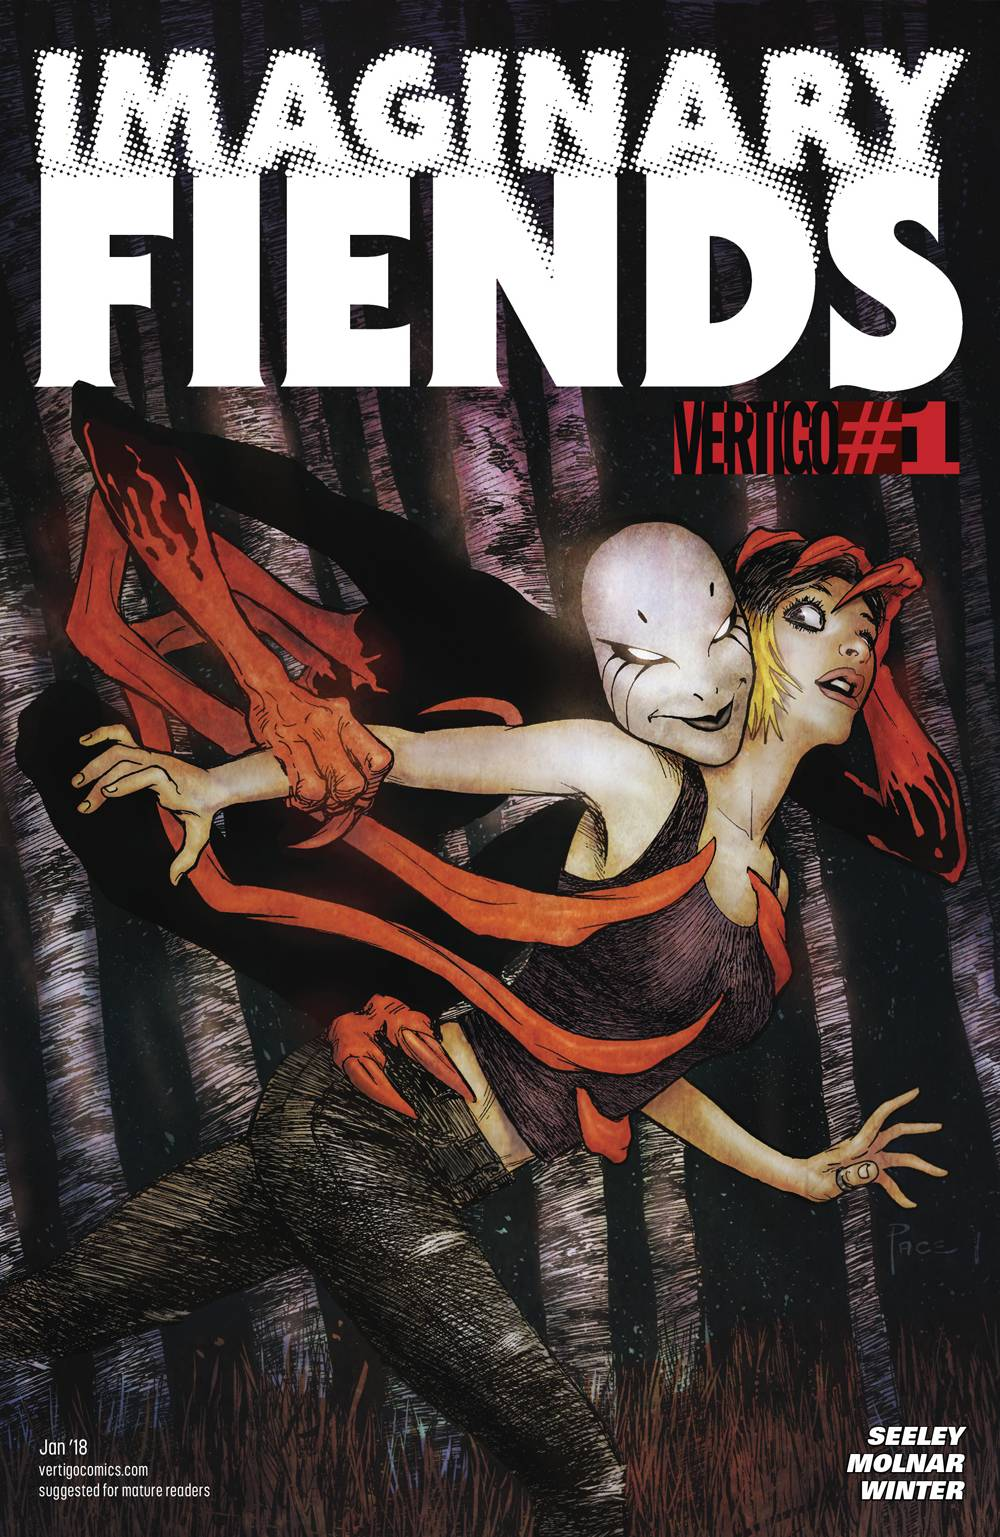 IMAGINARY FIENDS 1 of 6.jpg